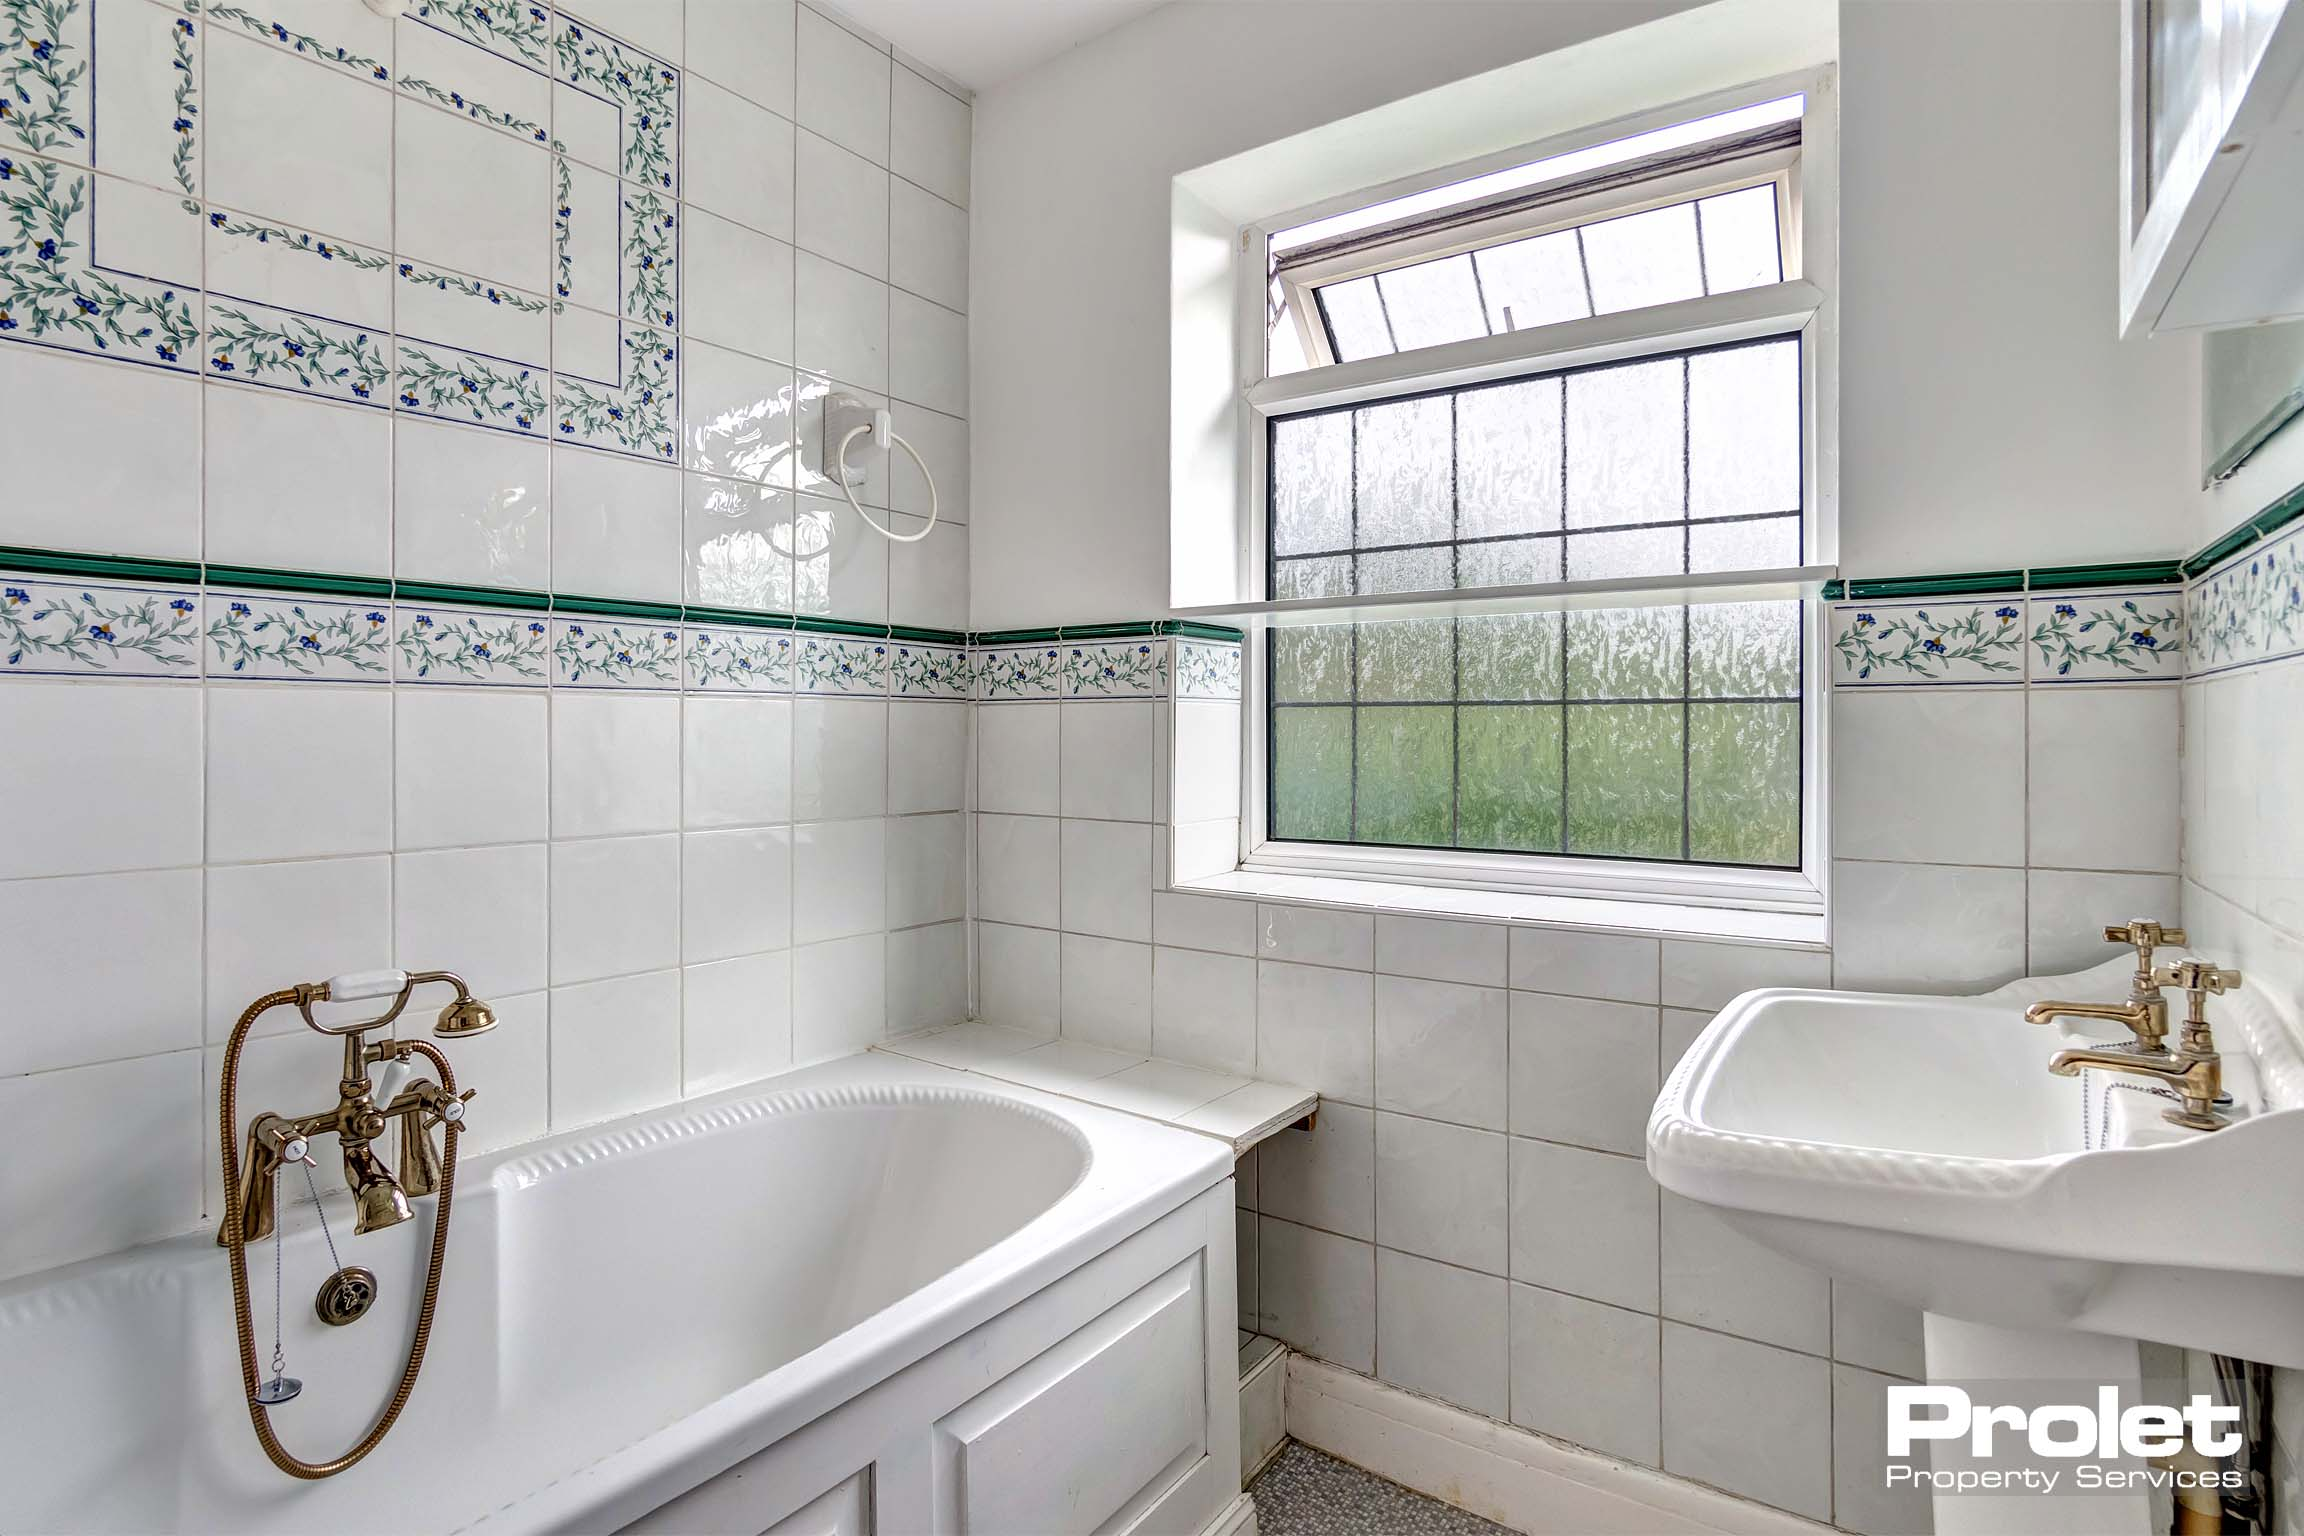 Booking a viewing for Leopold Road, Norwich, NR4 7AD